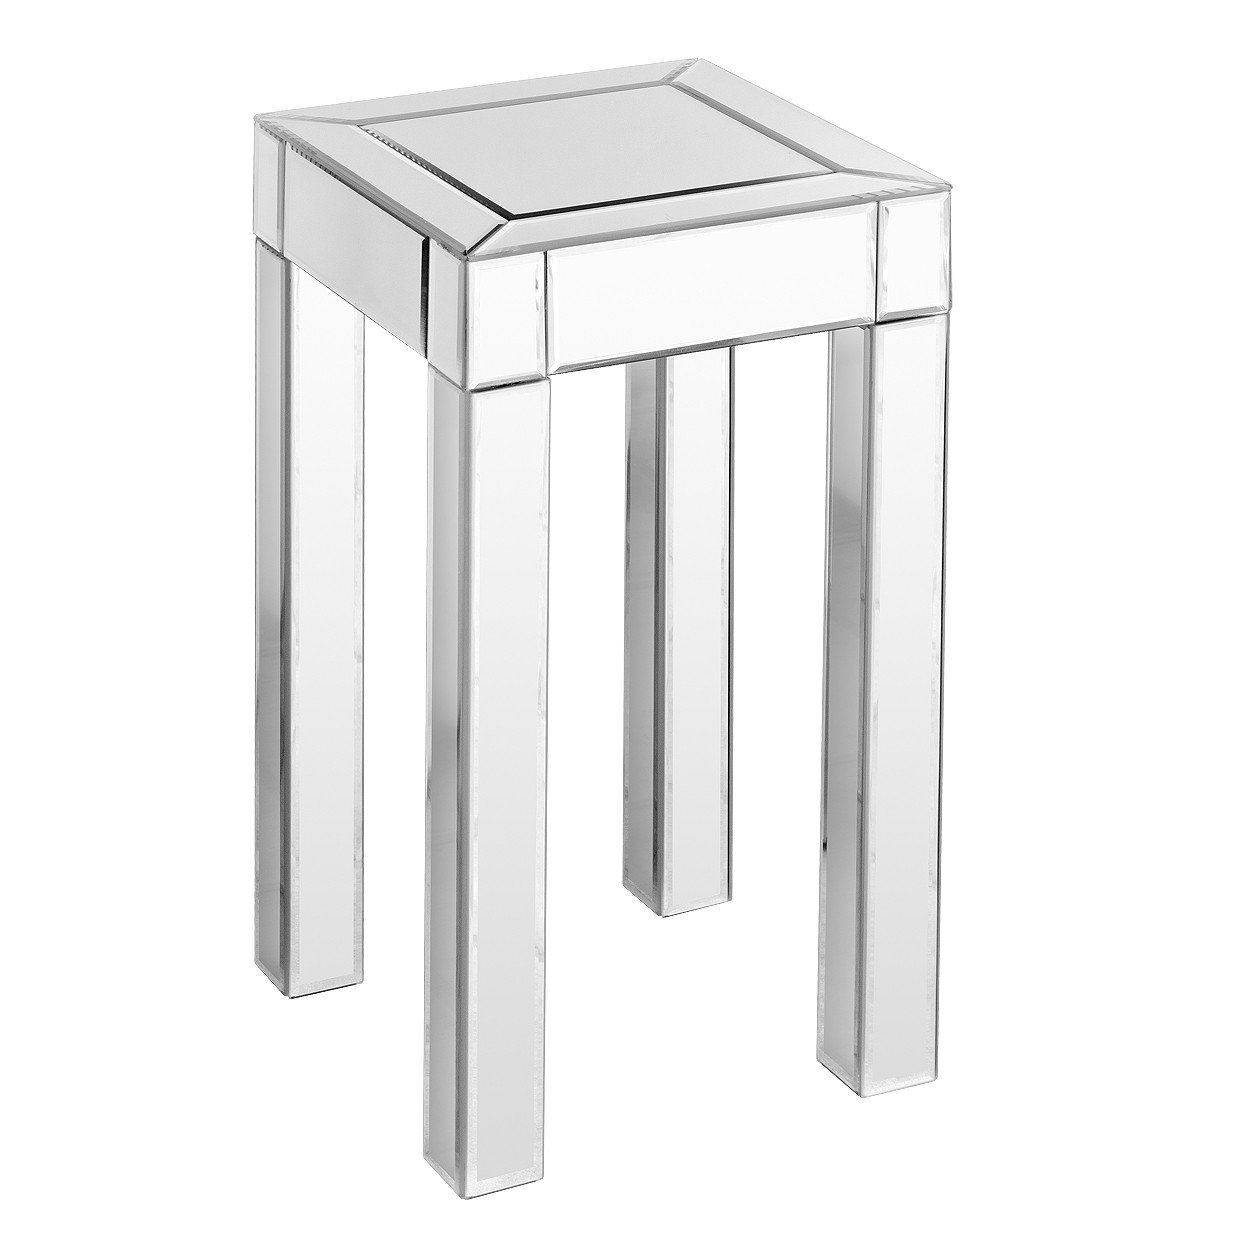 SMALL MIRRORED PEDESTAL TABLE